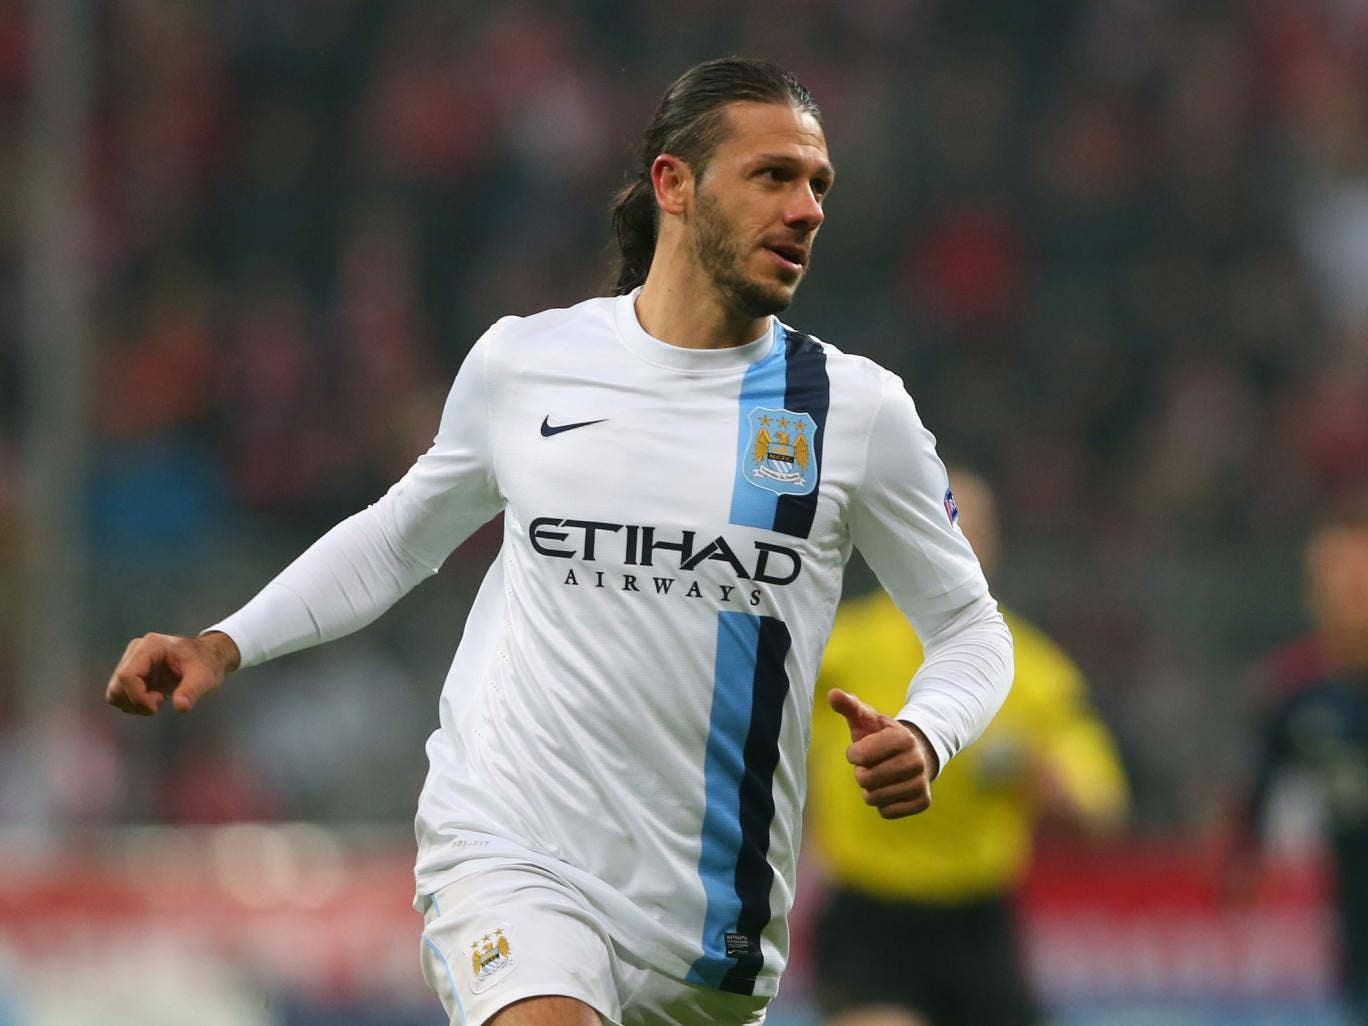 City's only outlay on defensive players last summer was £3.5m on Martin Demichelis